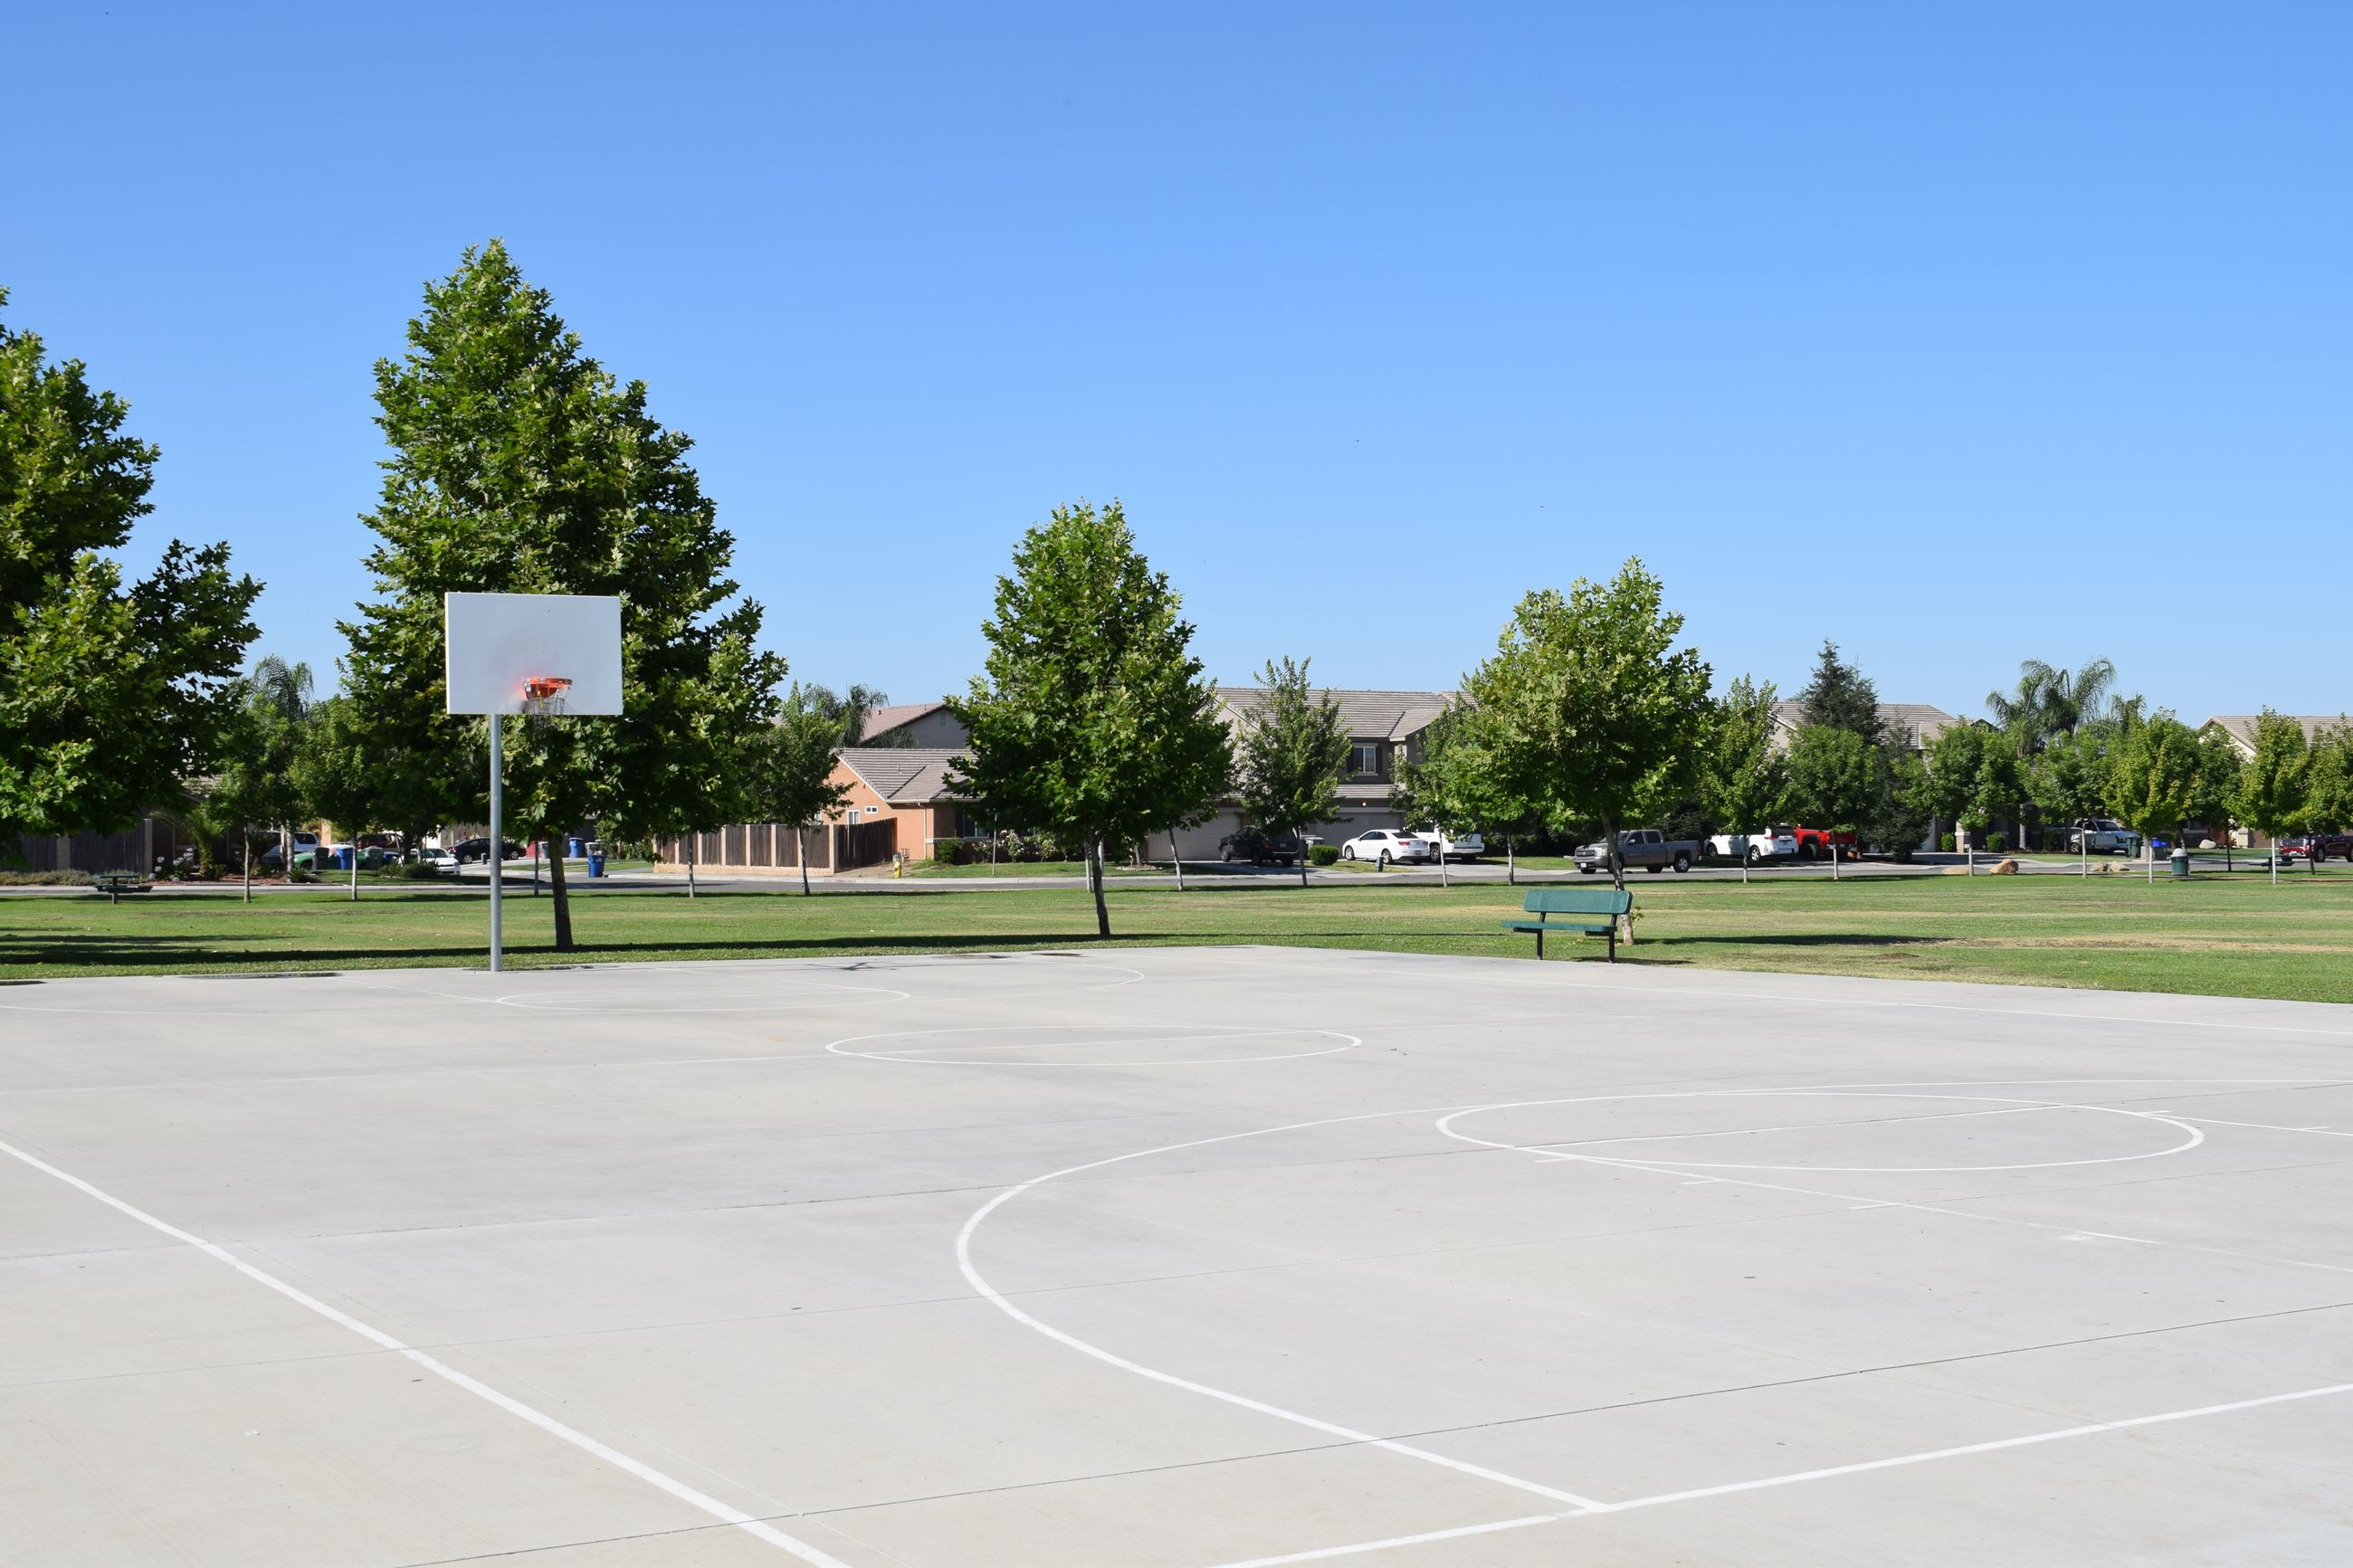 Veneto Park Basketball court